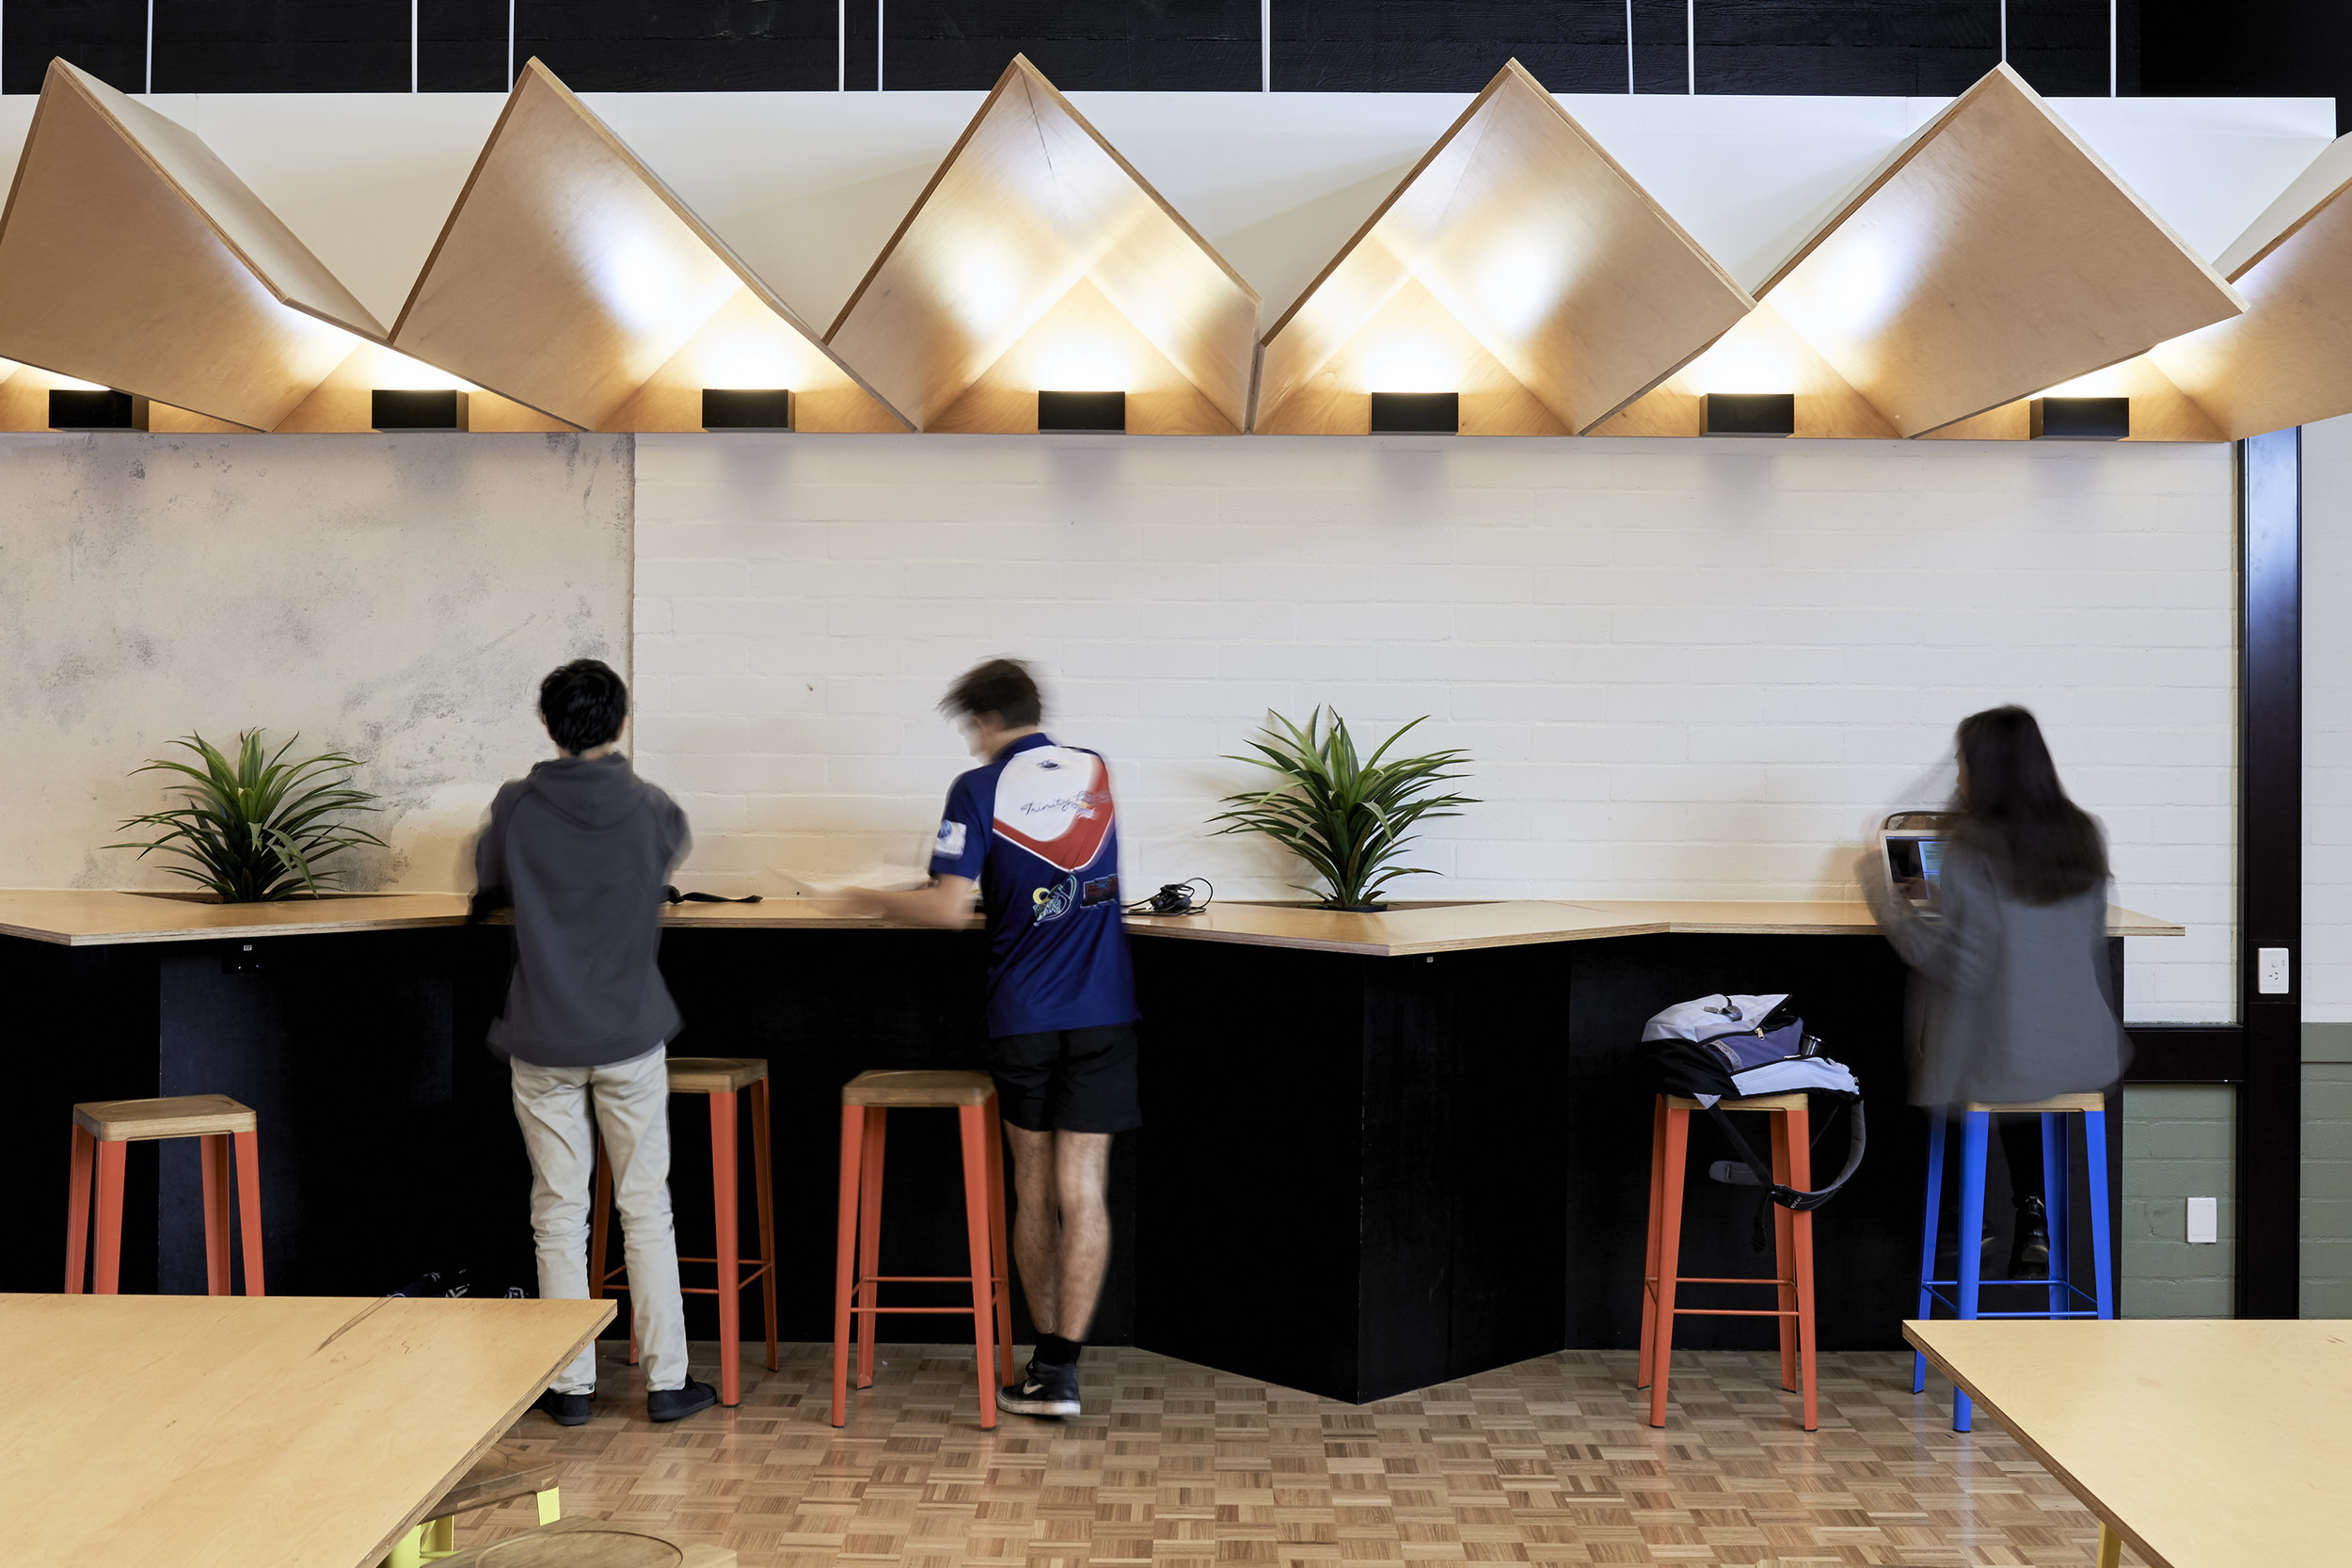 MONASH UNIVERSITY TEN NORTH STUDENT LOUNGE